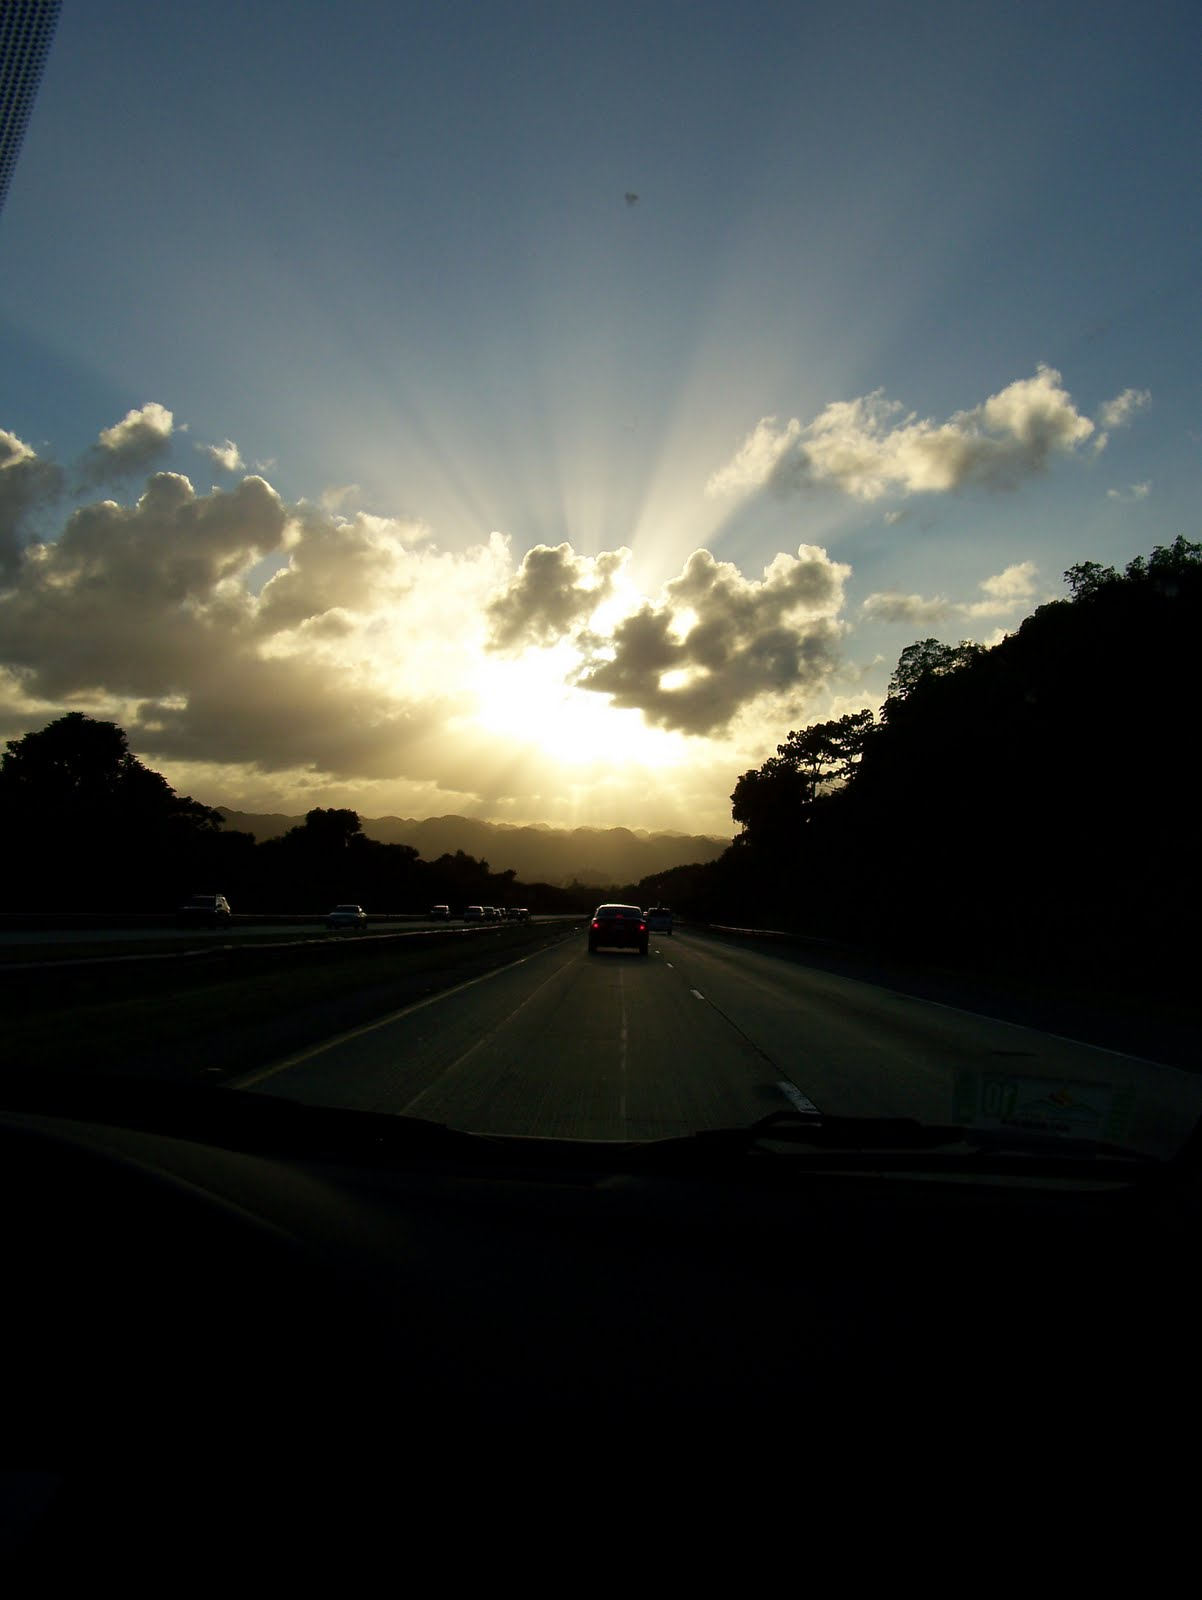 [Driving+to+Rincon+by+jafabrit.JPG]